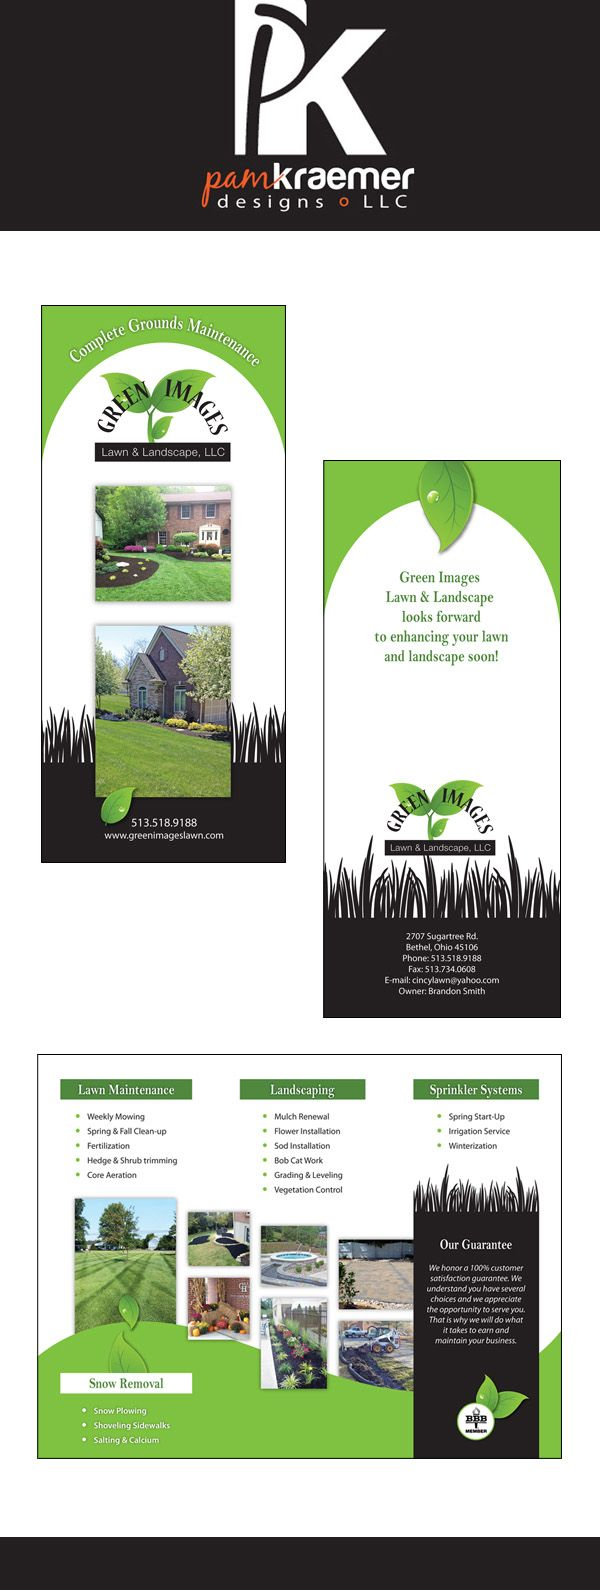 brochure design for a lawn and landscape company